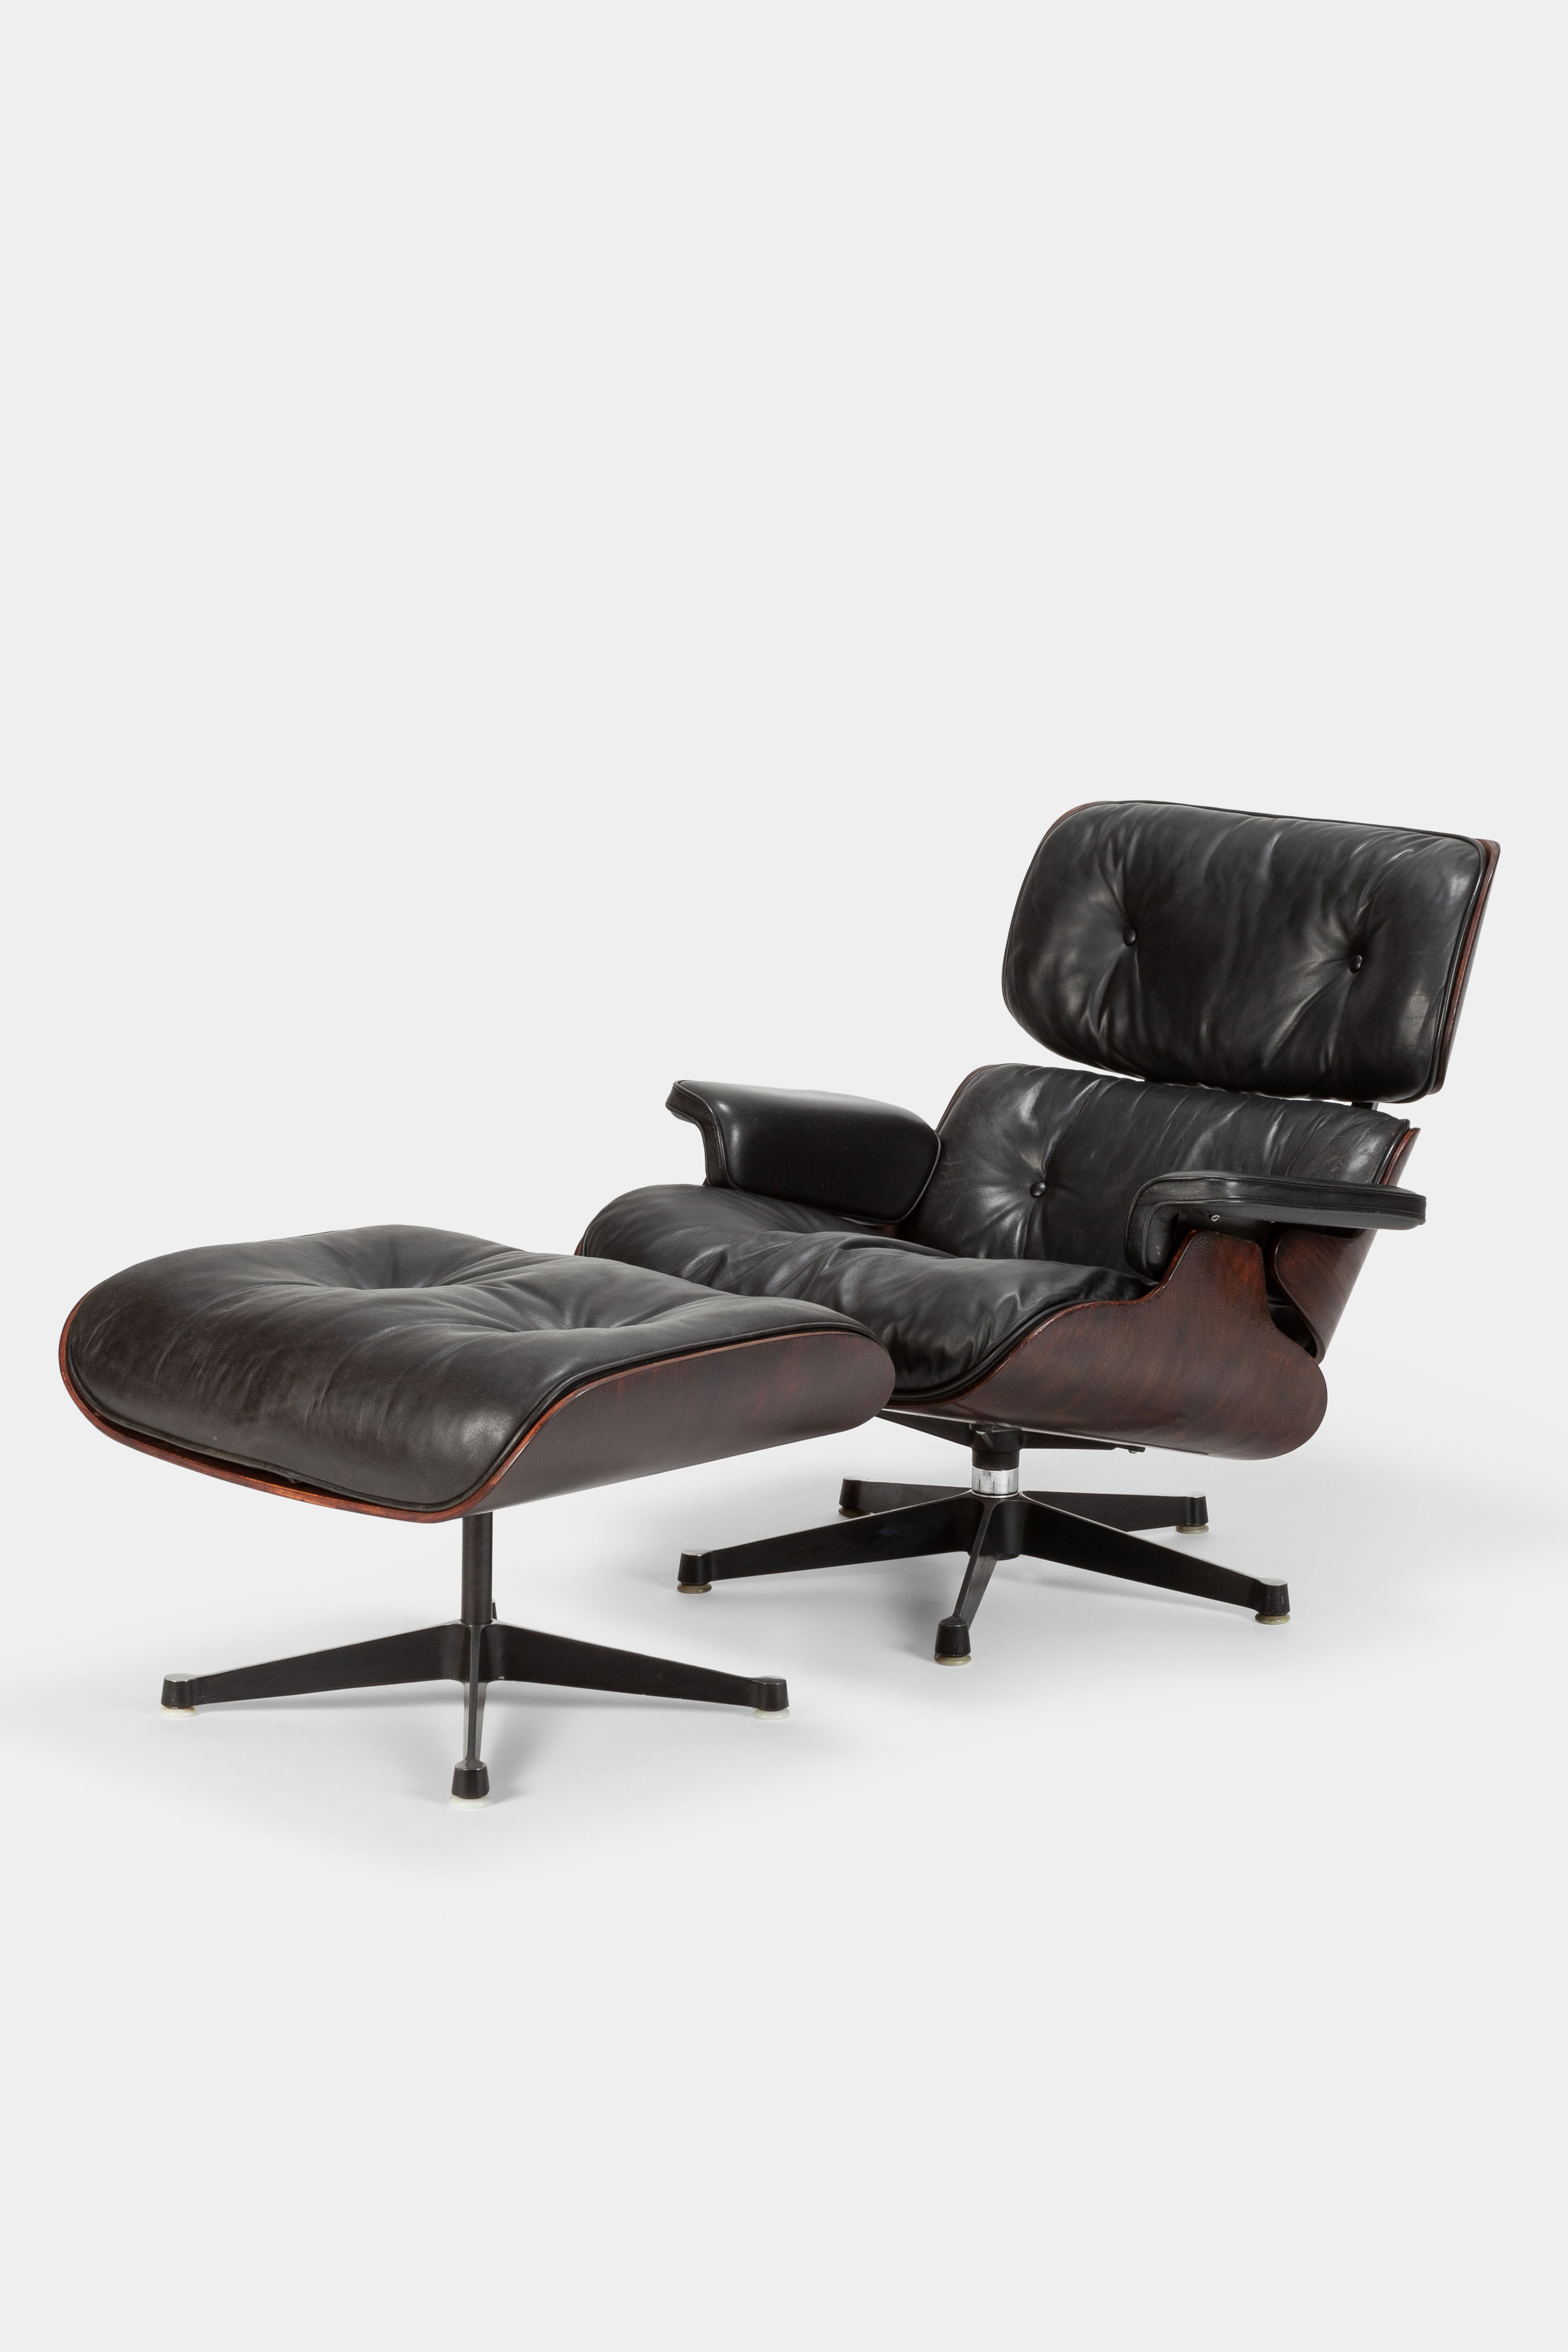 Charles Ray Eames Lounge Chair Vitra 70 S